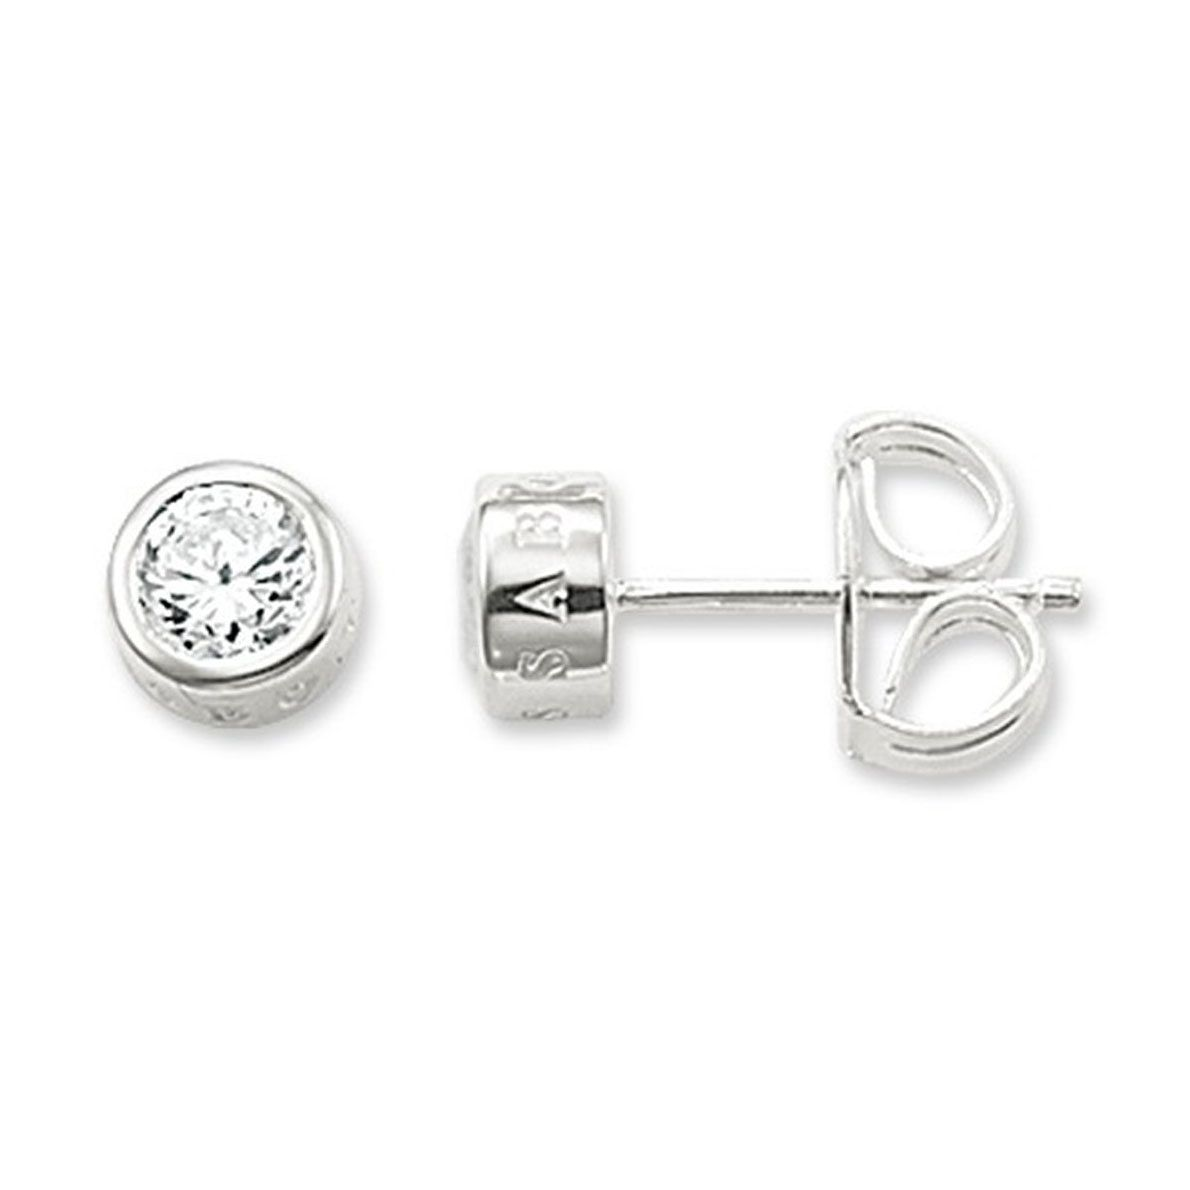 Thomas Sabo Silver Cubic Zirconia Stud Earrings - Product number 2898985